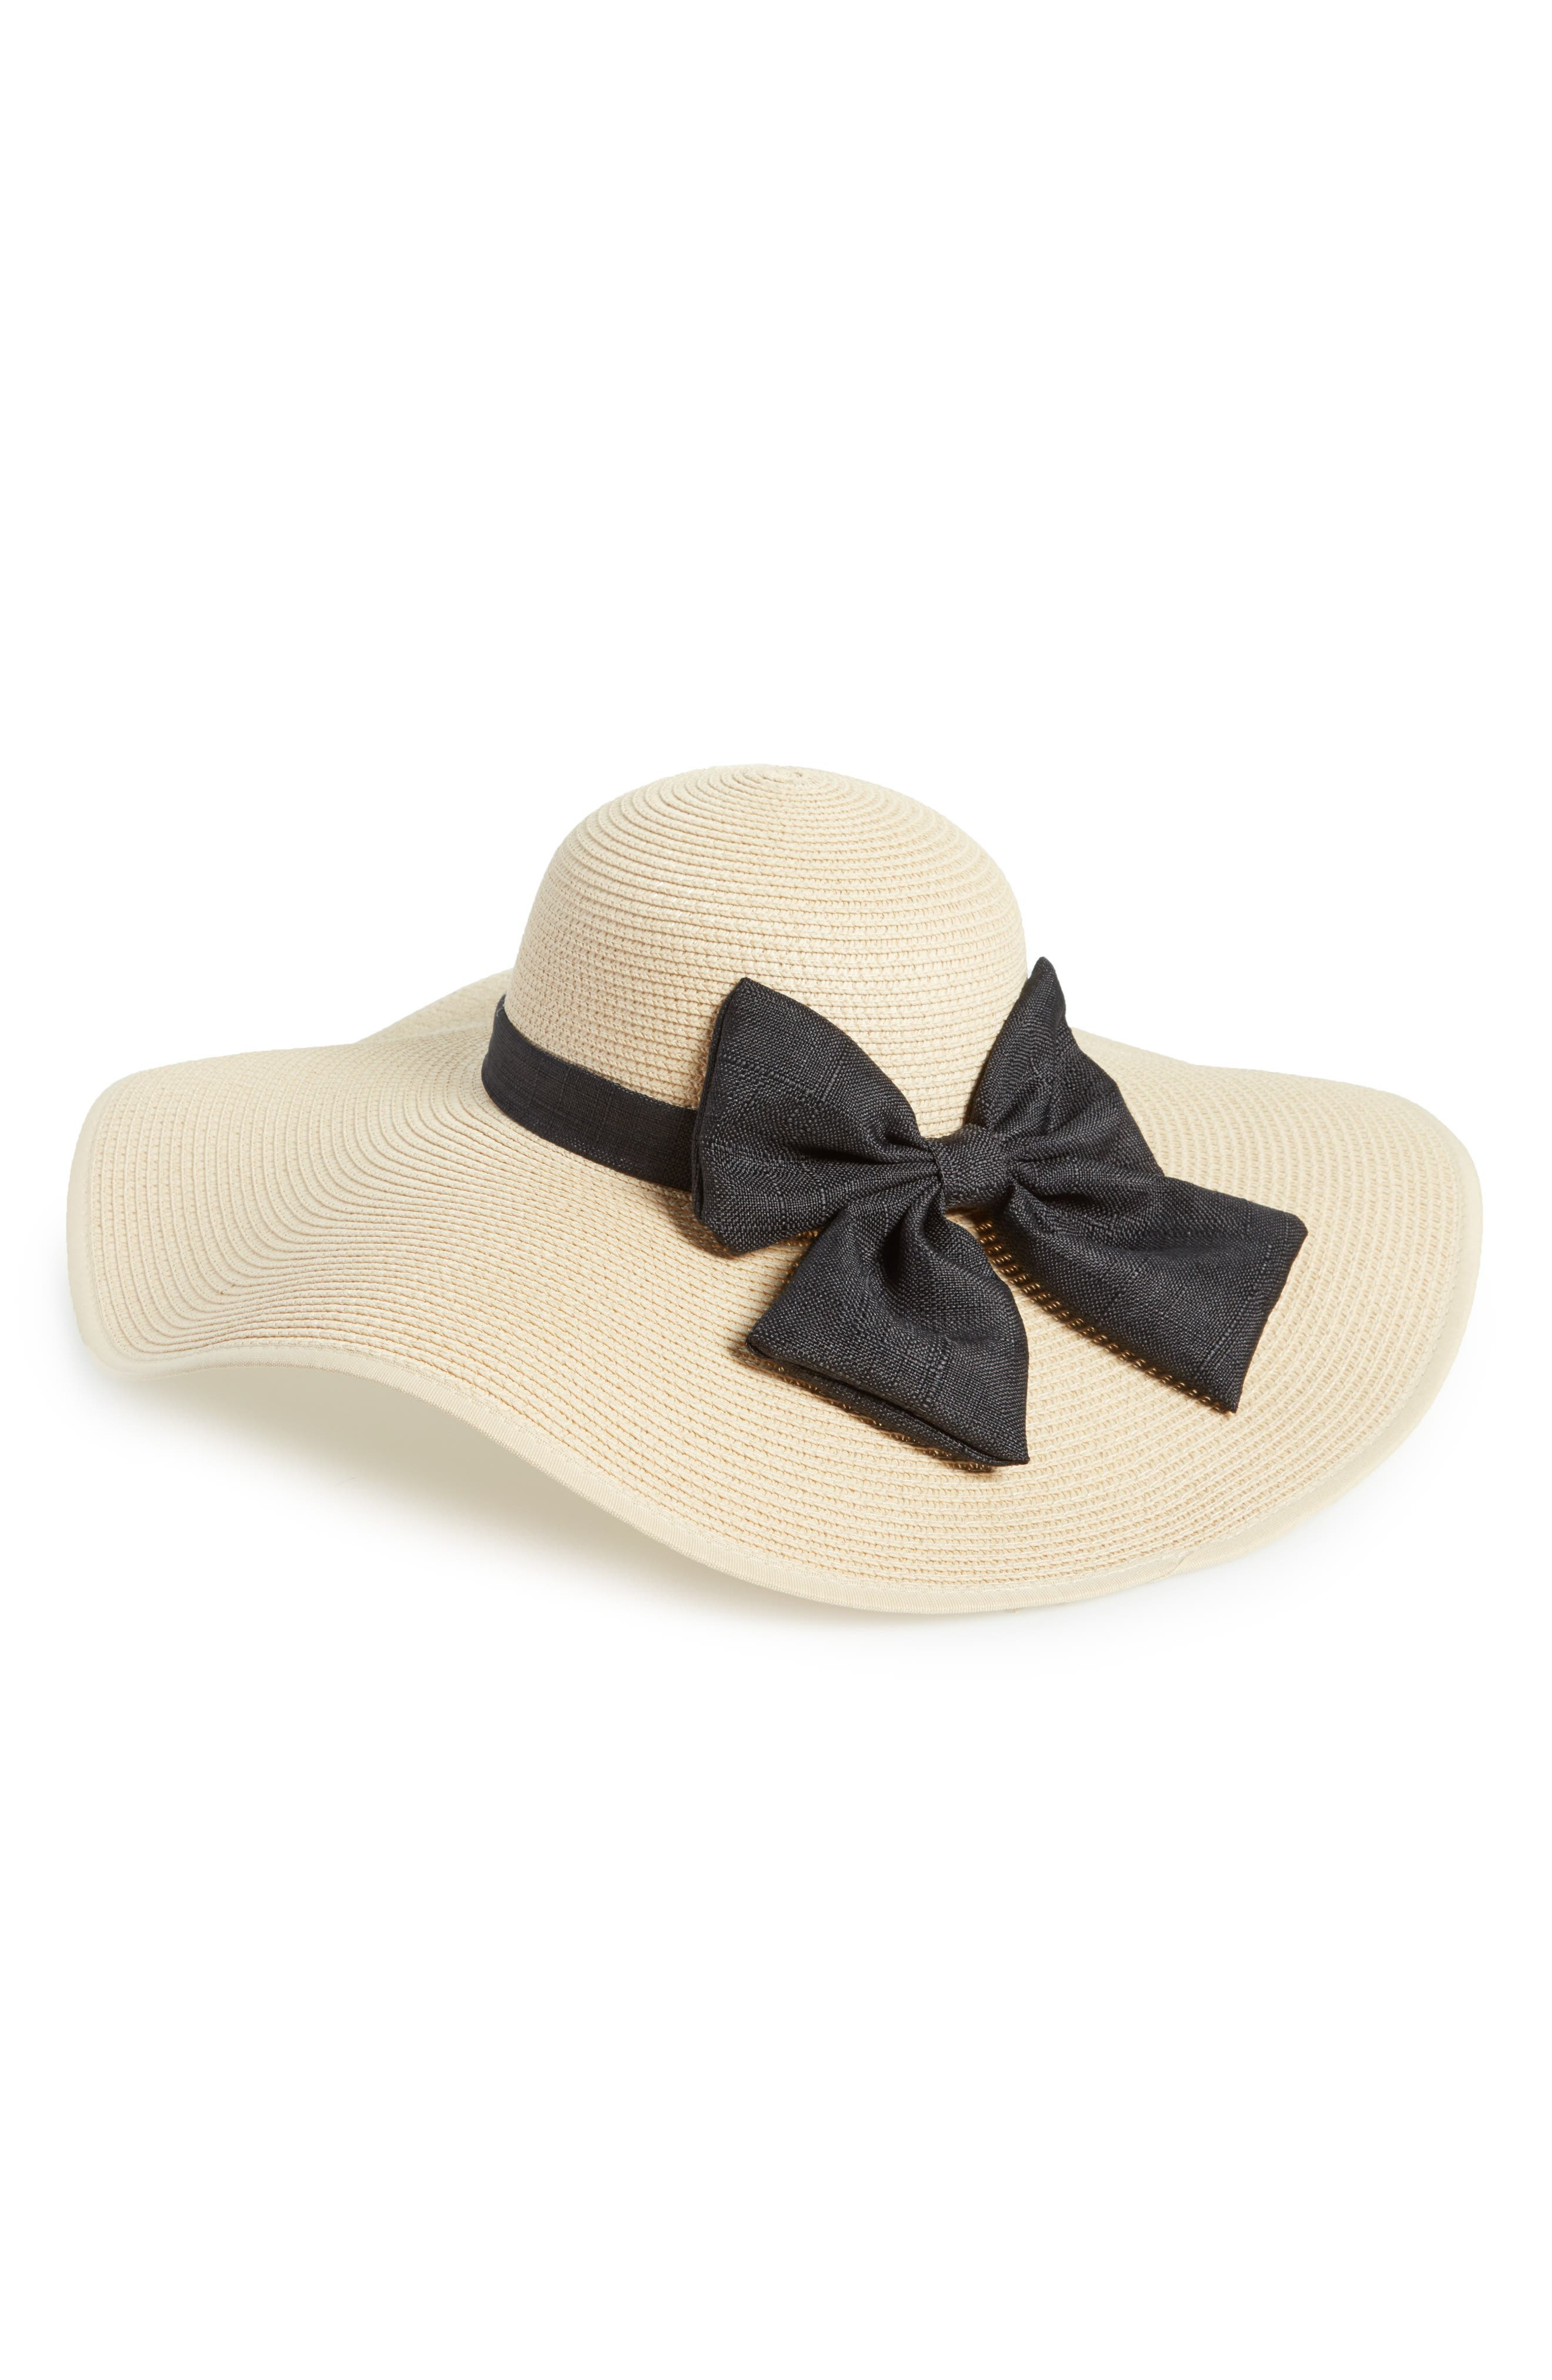 Oversize Bow Floppy Straw Hat,                         Main,                         color, 250